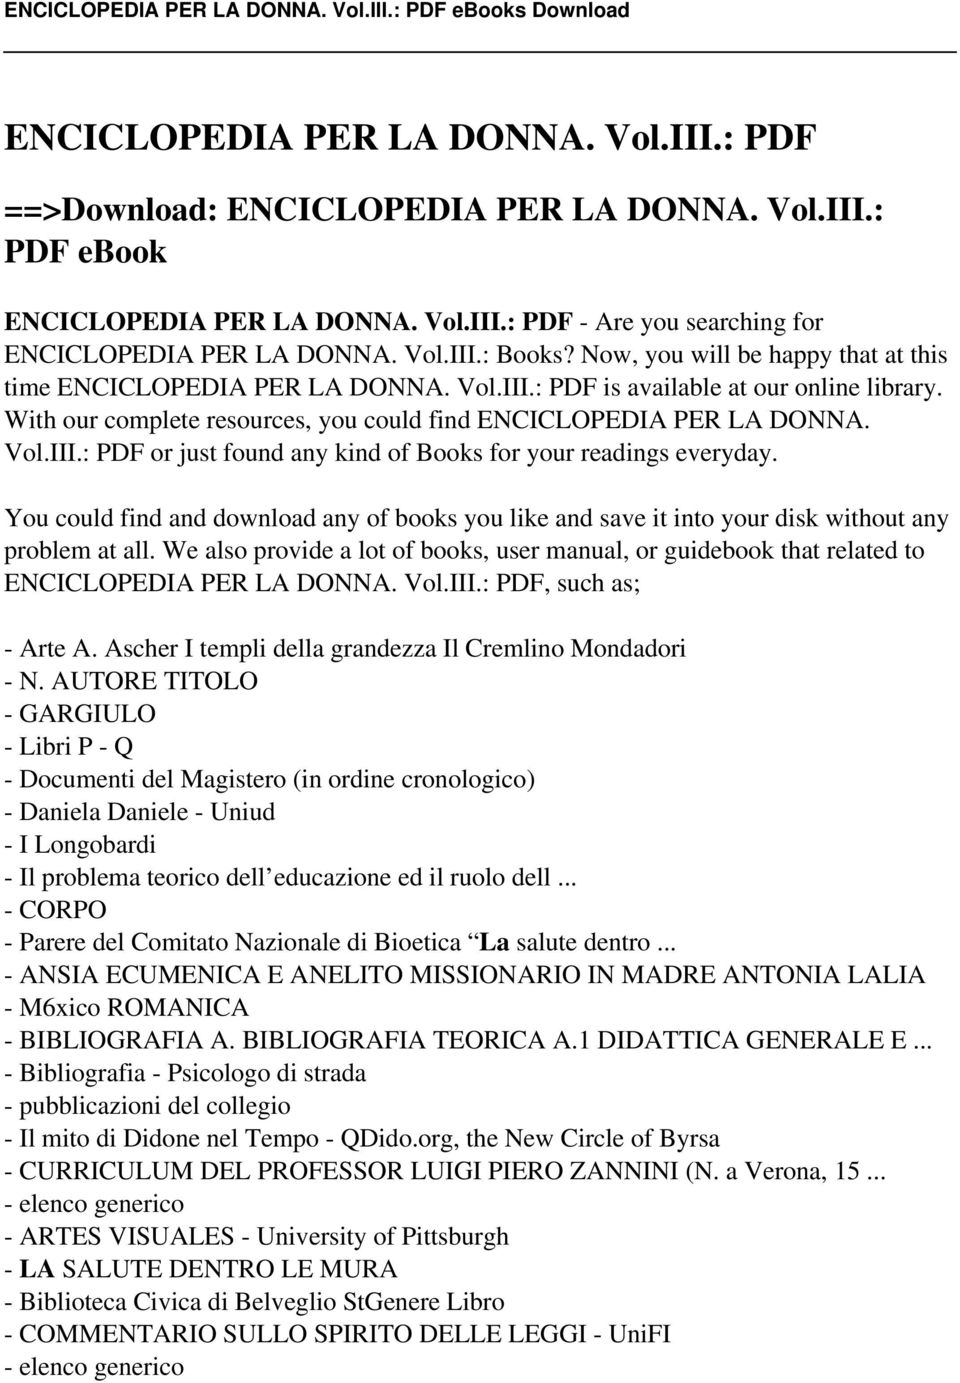 Enciclopedia per la donna voliii pdf pdf you could find and download any of books you like and save it into your disk fandeluxe Images